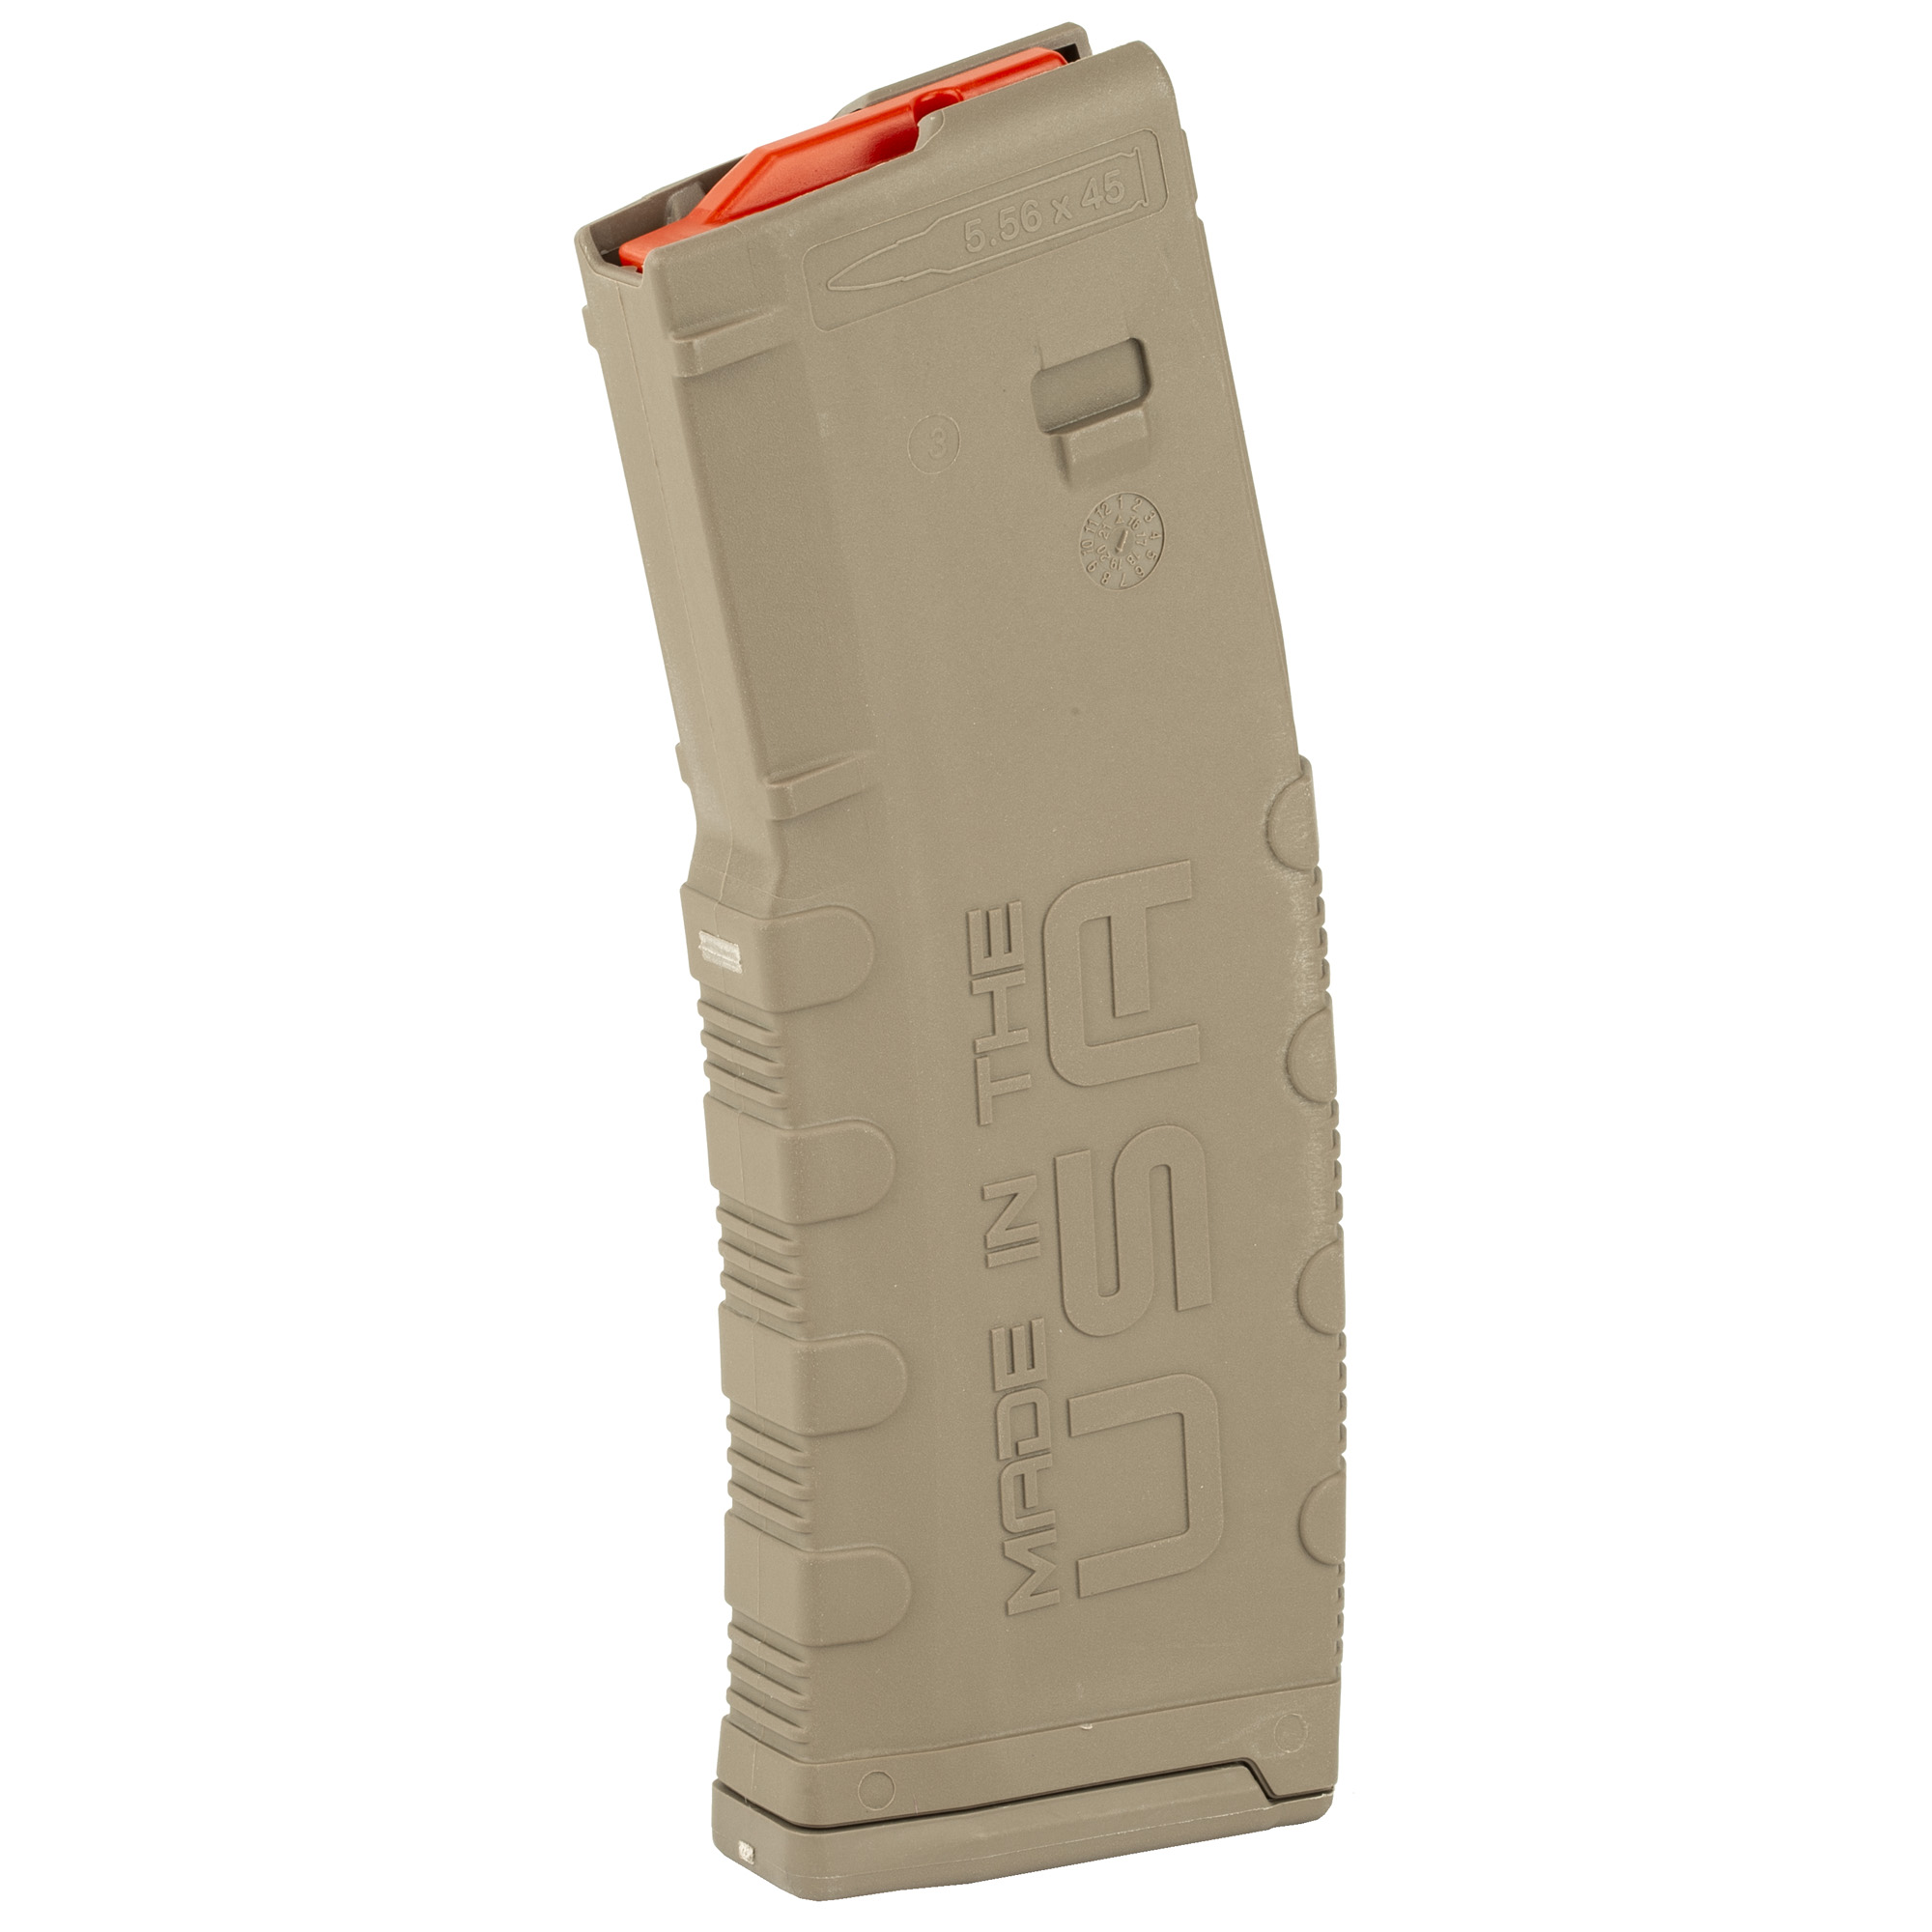 """The Amend2 30-round magazine is a sturdy"""" reliable AR15/M4/M16 magazine made of advanced polymer material. It is light"""" durable and an excellent alternative to the standard M4/M16 USGI aluminum magazines."""